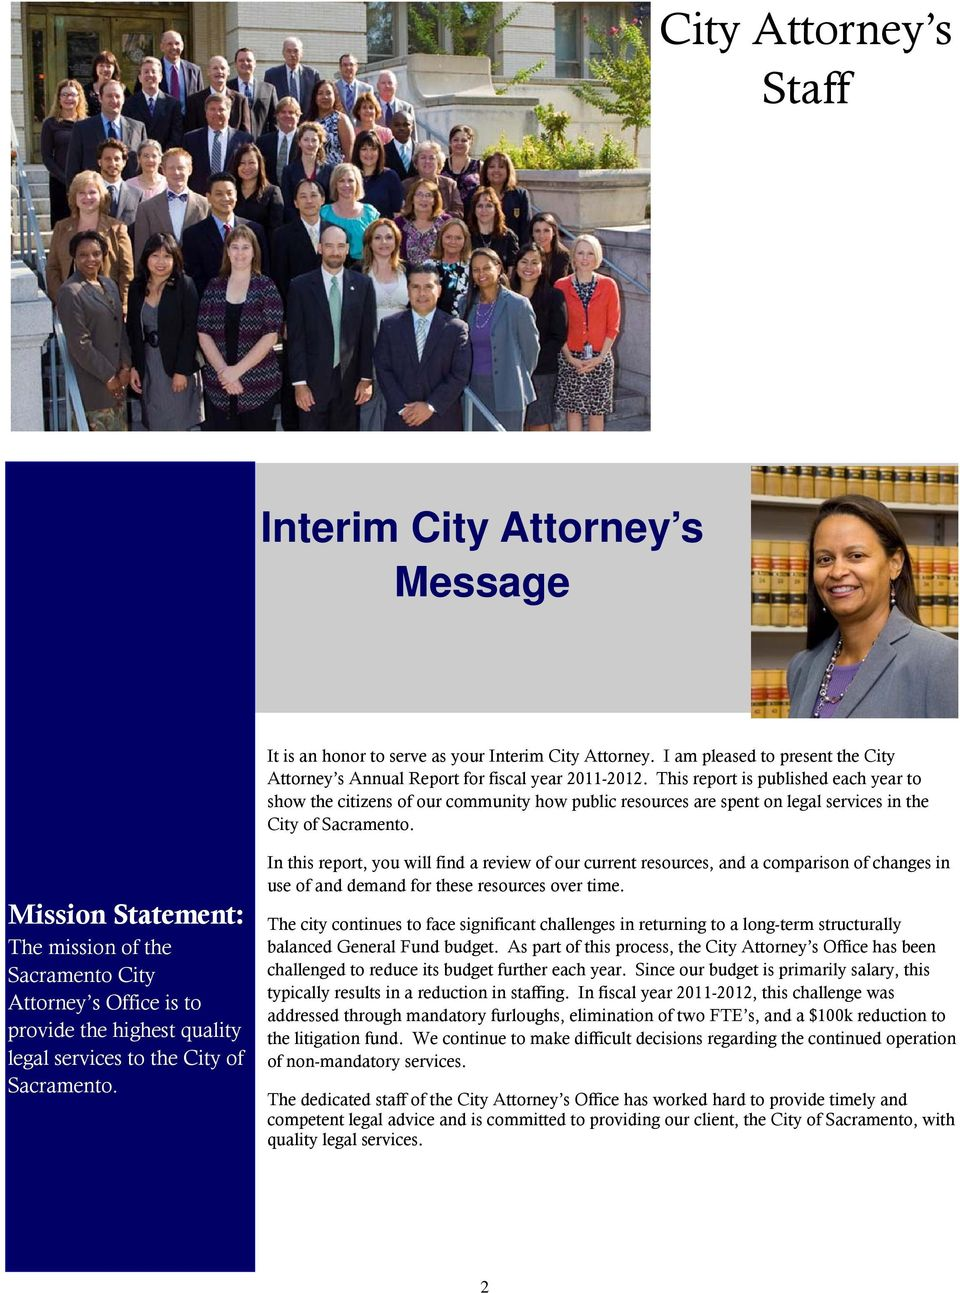 Mission Statement: The mission of the Sacramento City Attorney s Office is to provide the highest quality legal services to the City of Sacramento.